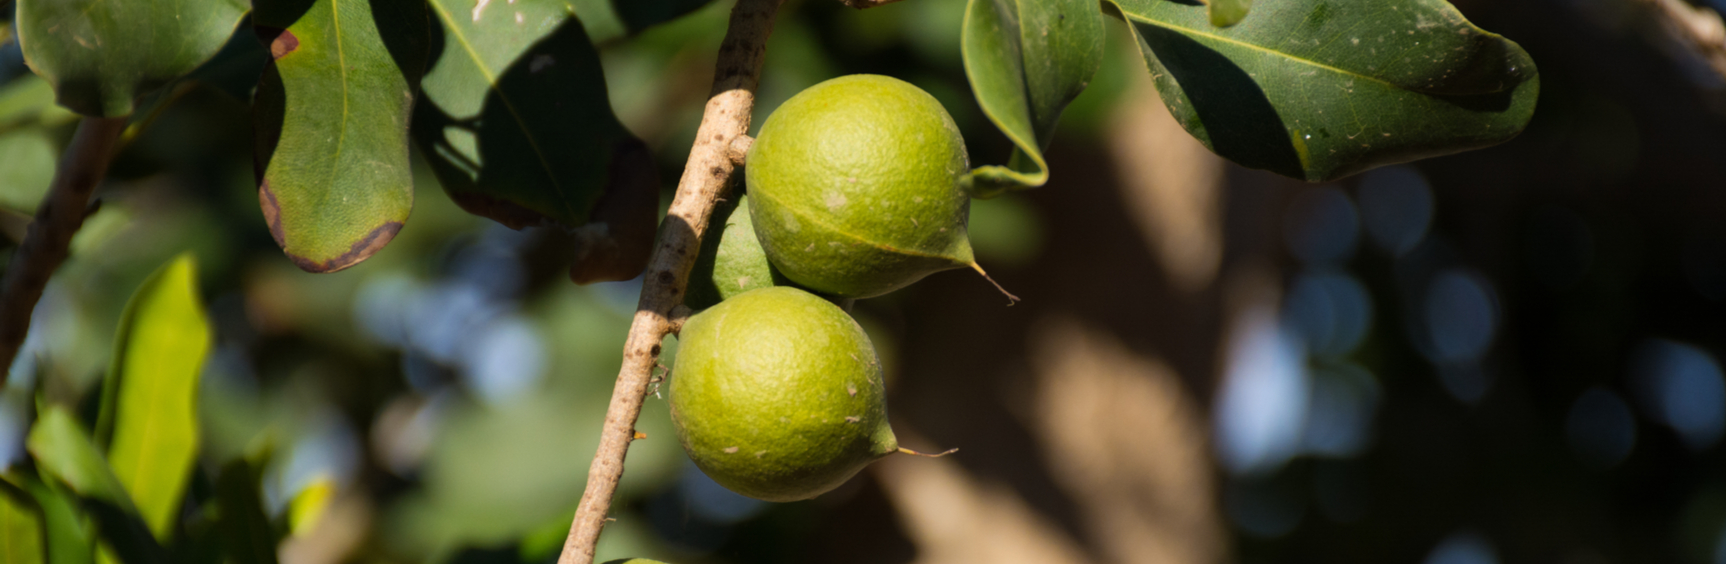 Macadamia tree - why are macadamia nuts so expensive